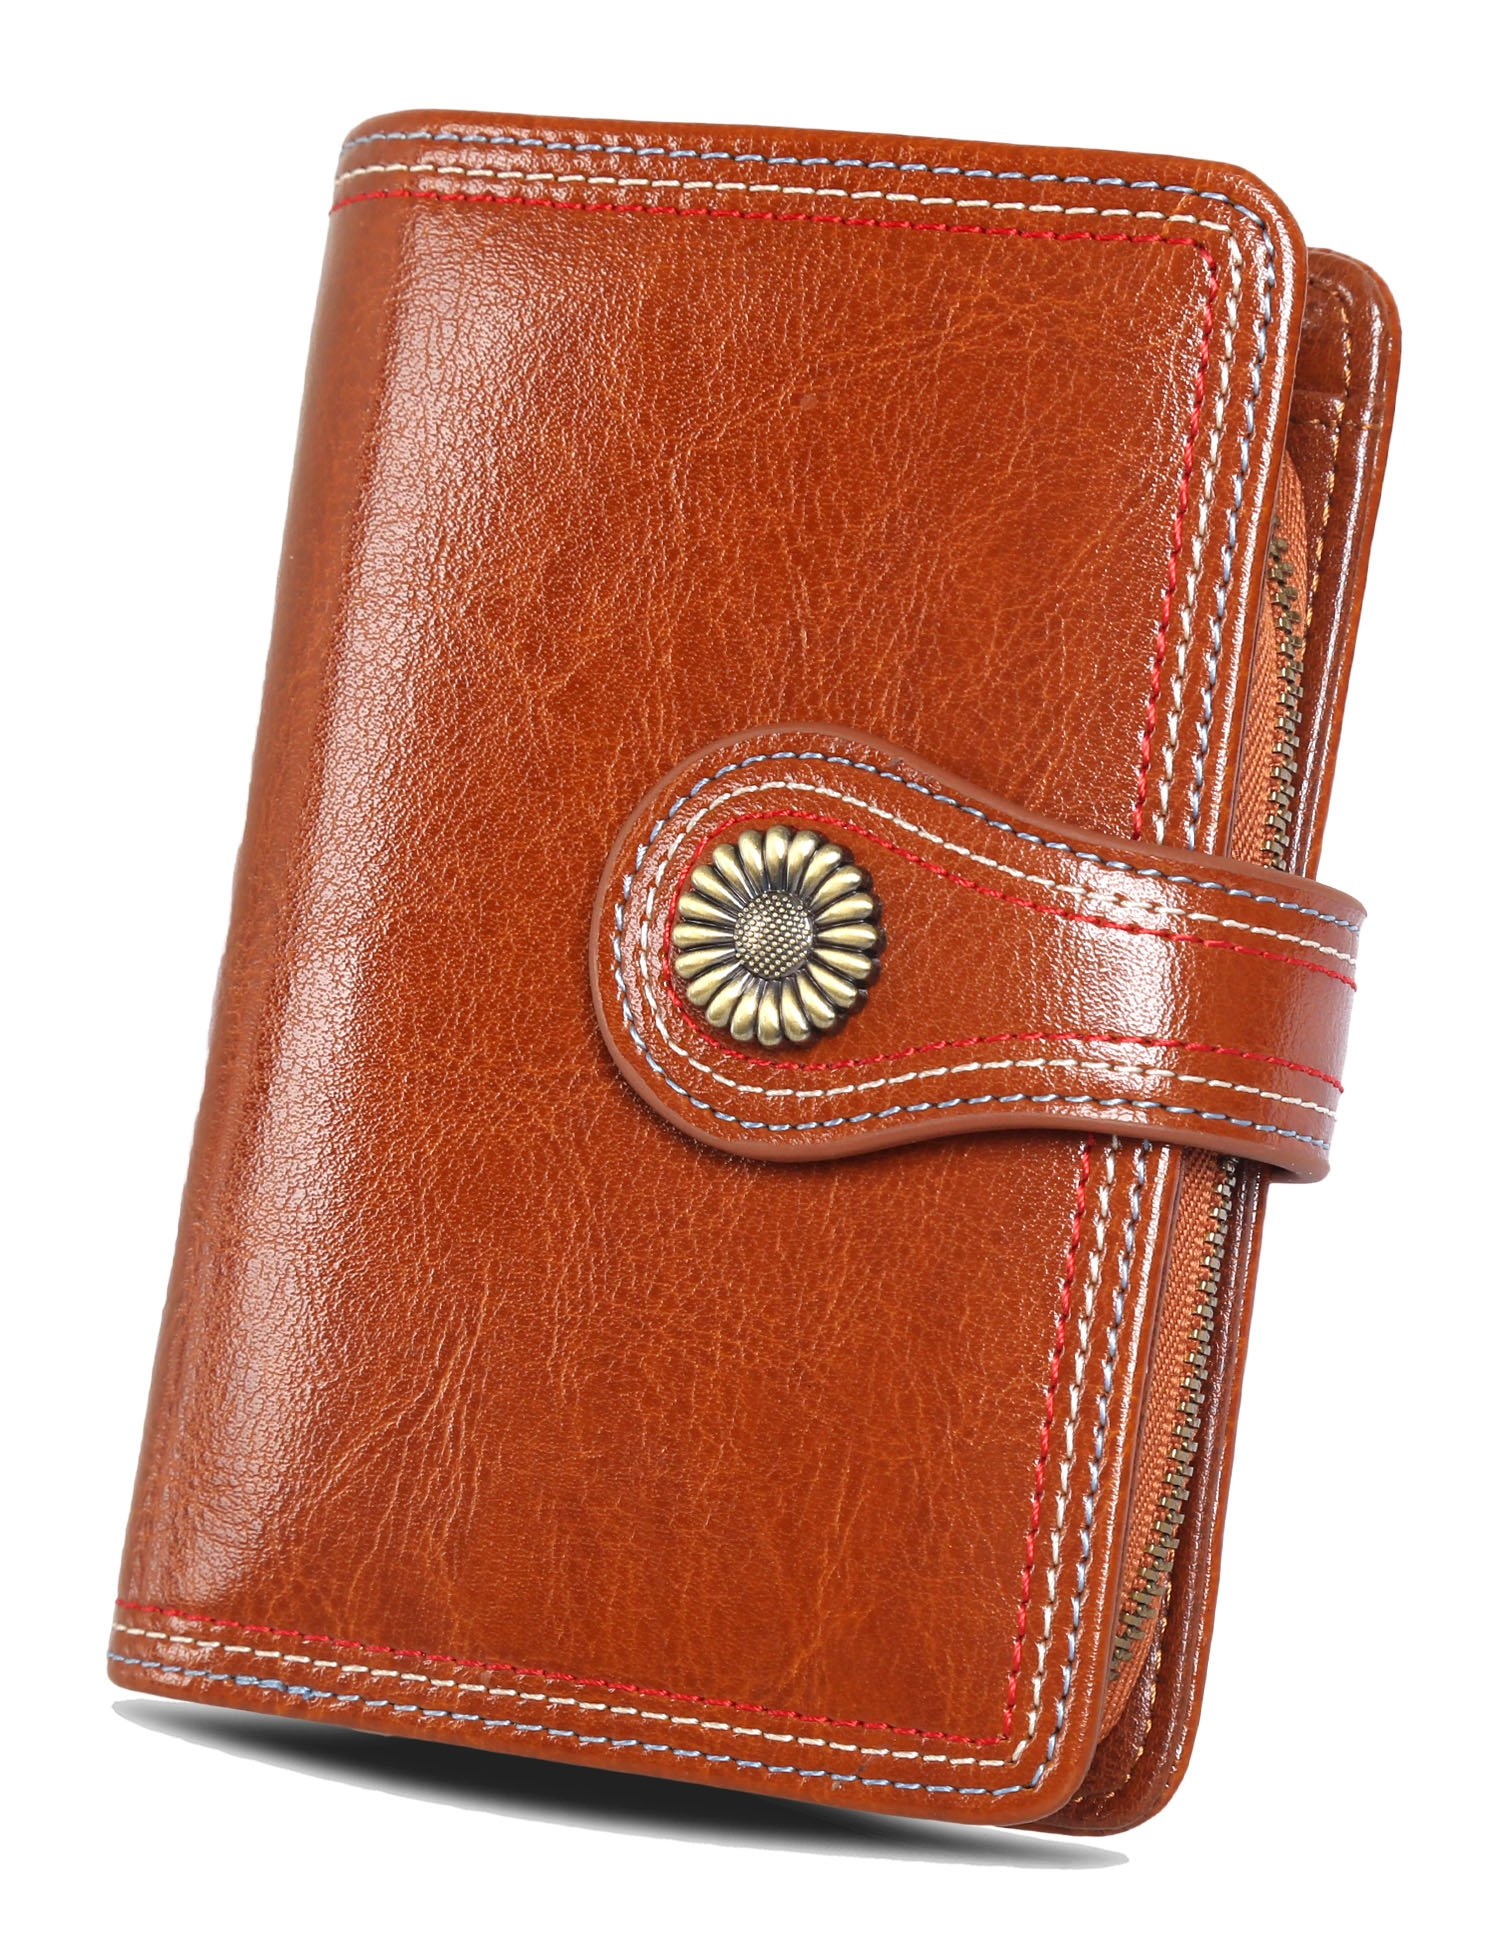 Women's Leather Small Wallets Card Case Ladies Purse RFID Wallet With ID Window